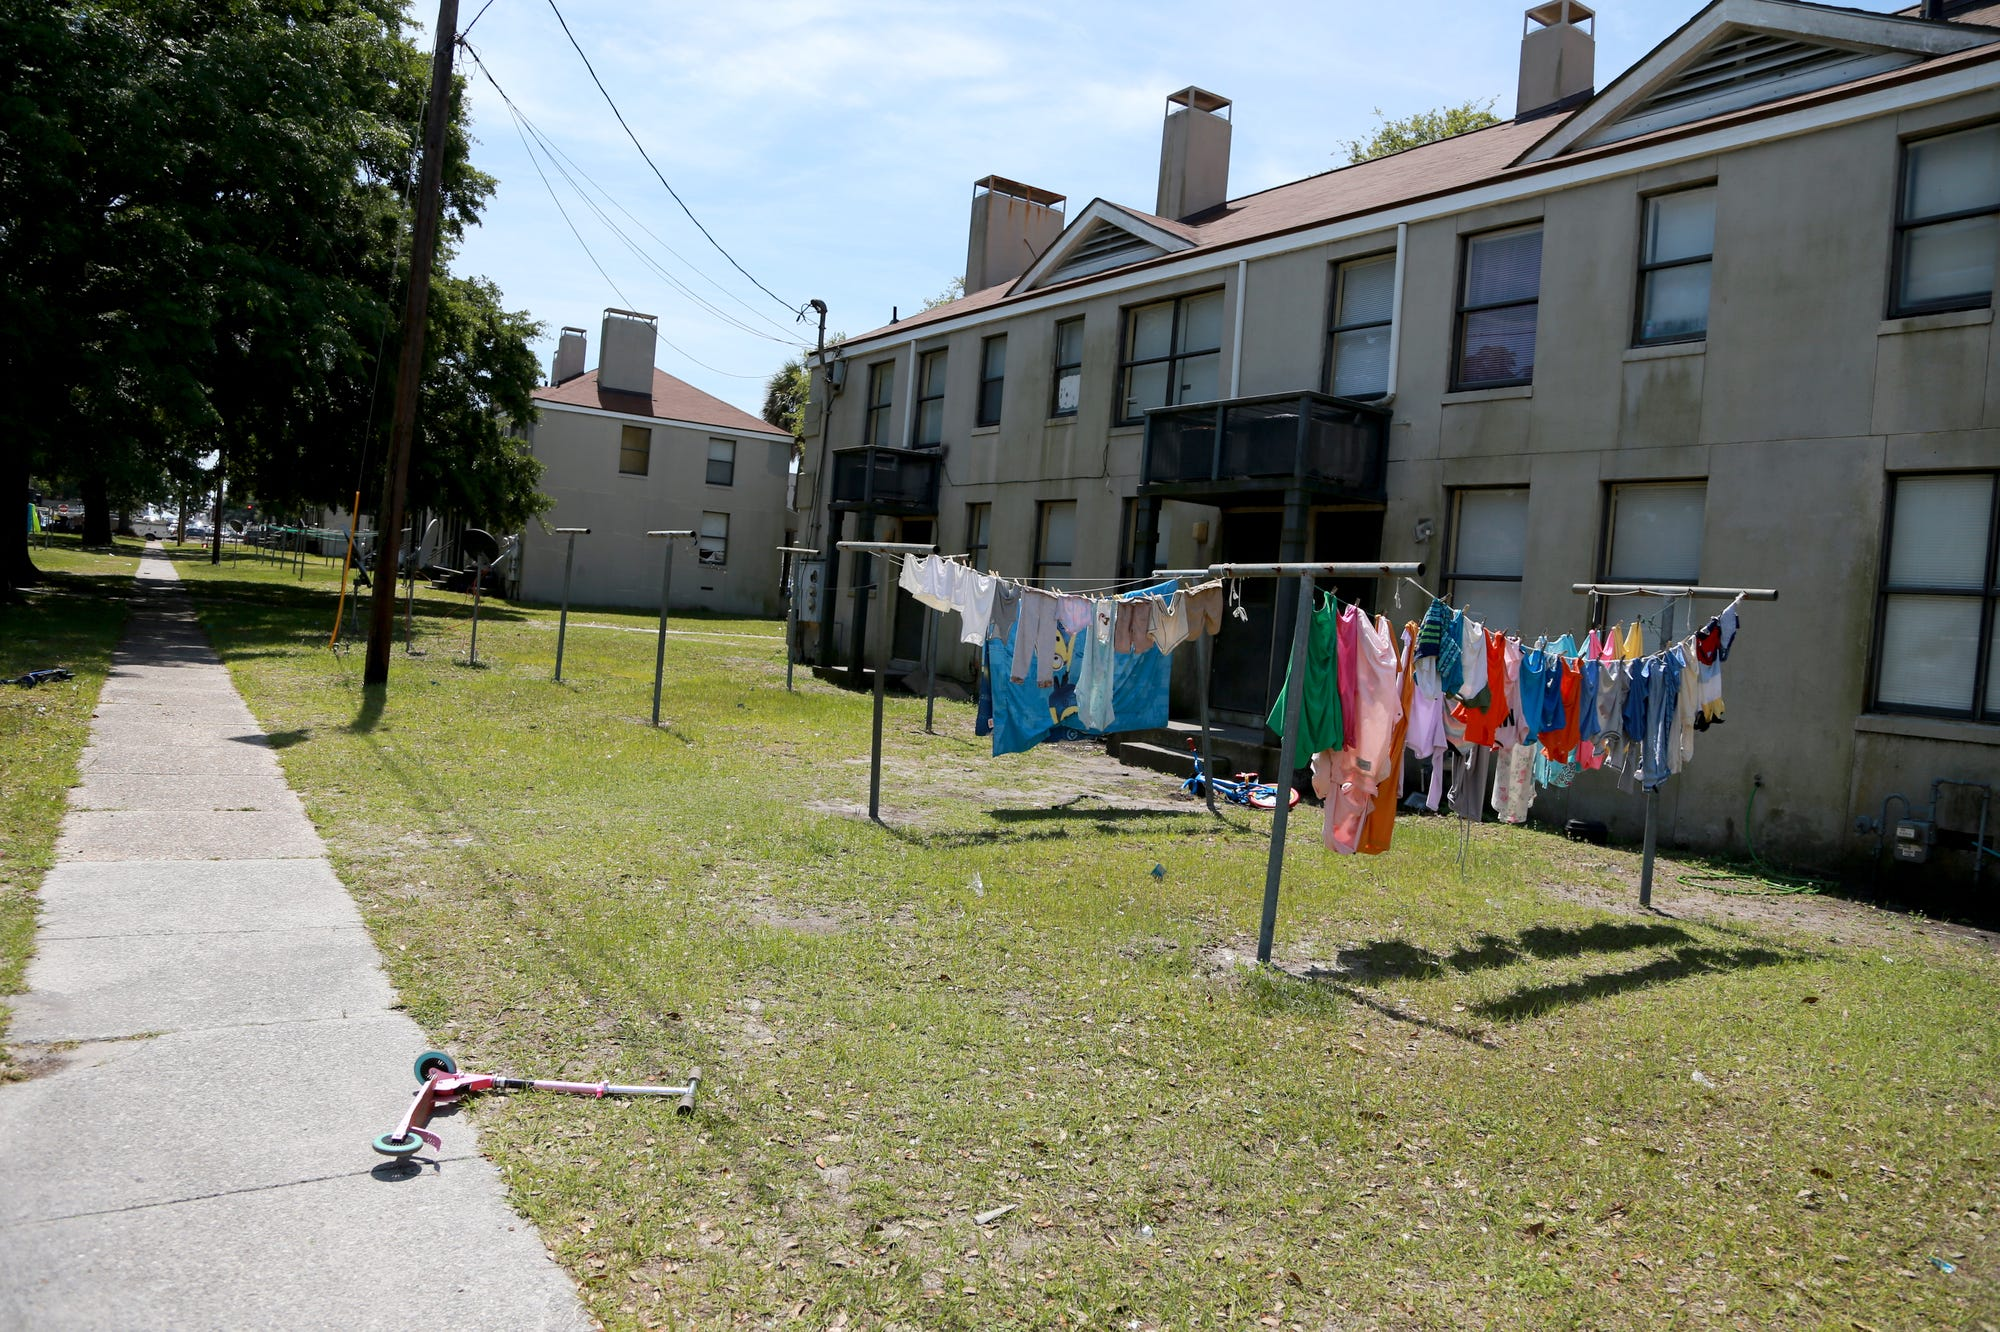 Section 8 housing program reinforces Jim Crow pattern across the South, data shows